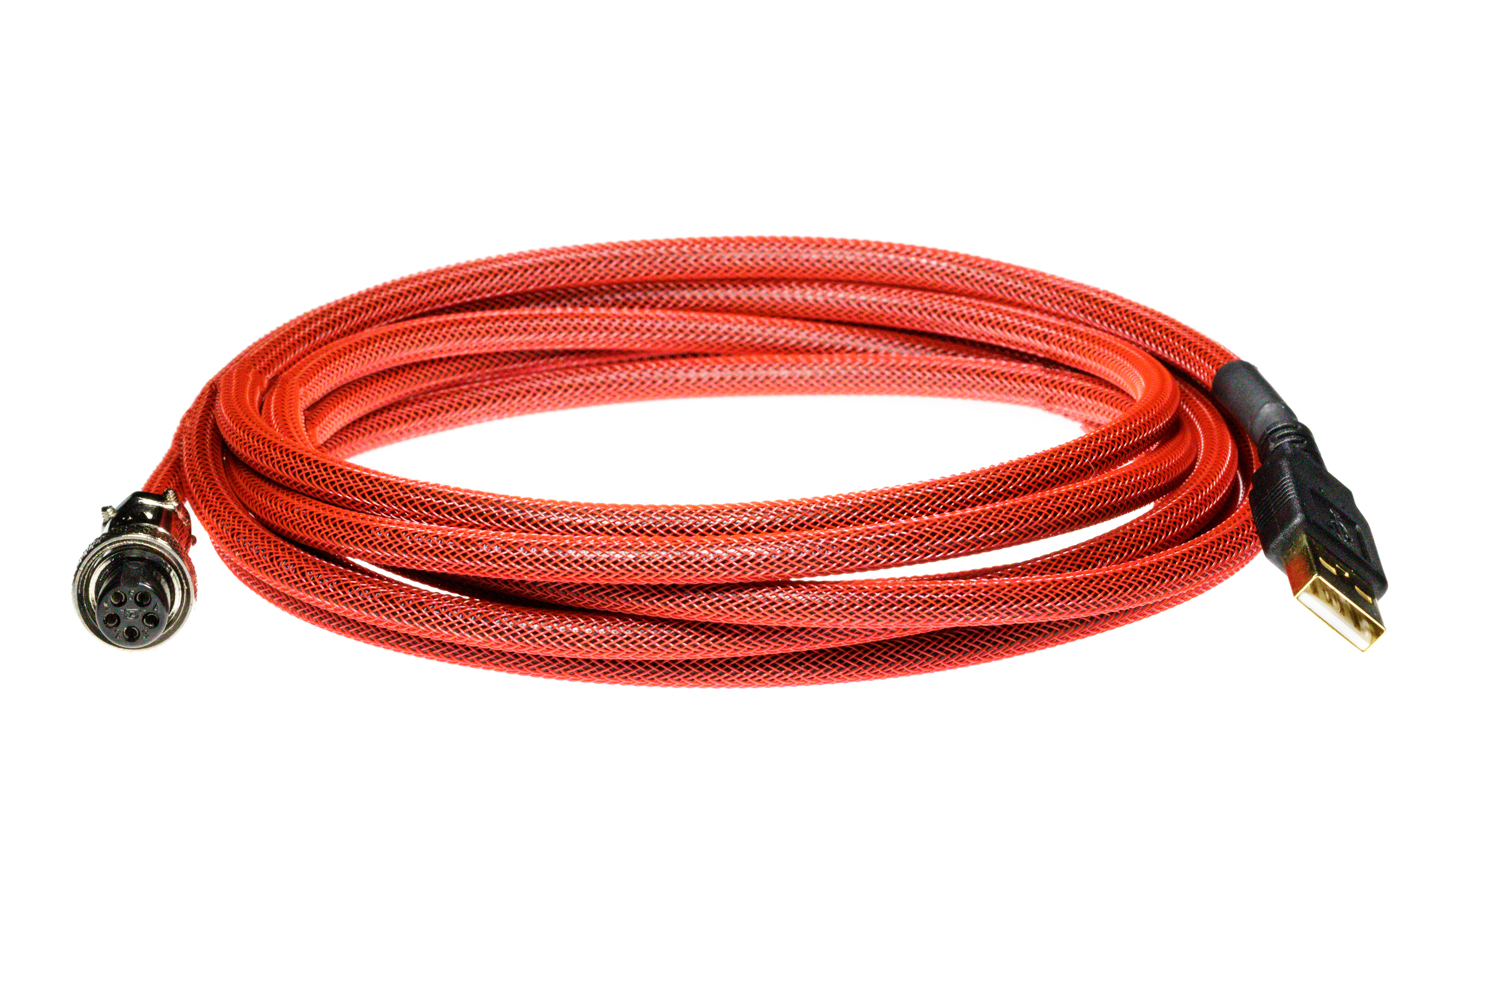 Pro Cable with Red TechFlex USB Cable